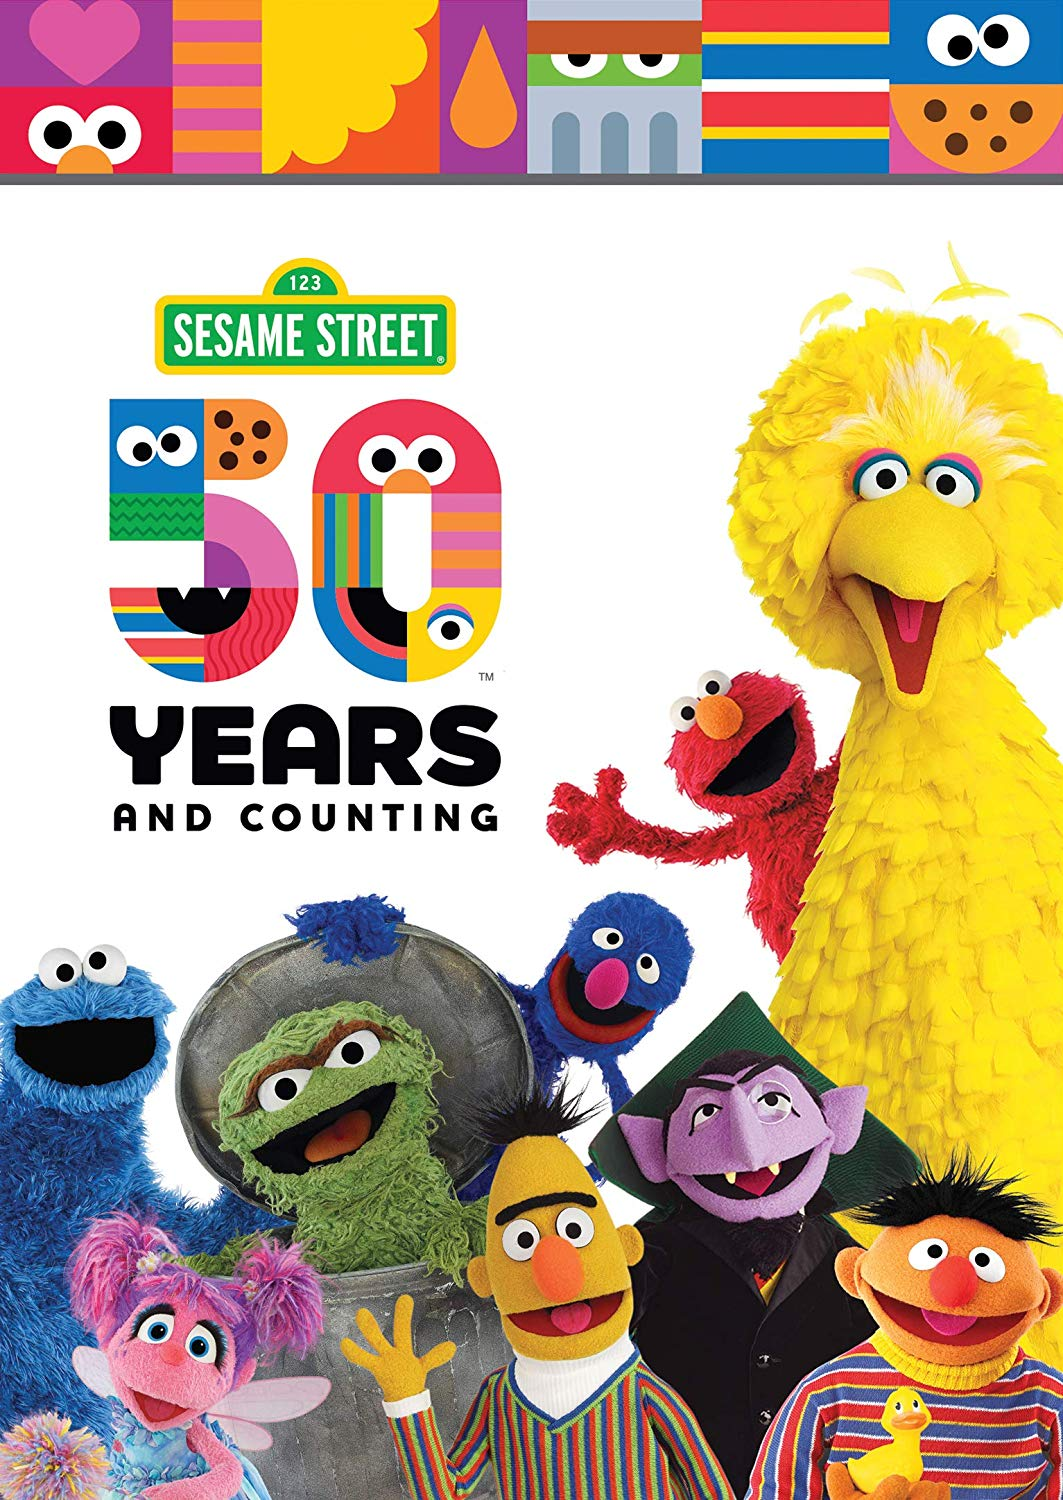 50 Years and Counting | Muppet Wiki | FANDOM powered by Wikia